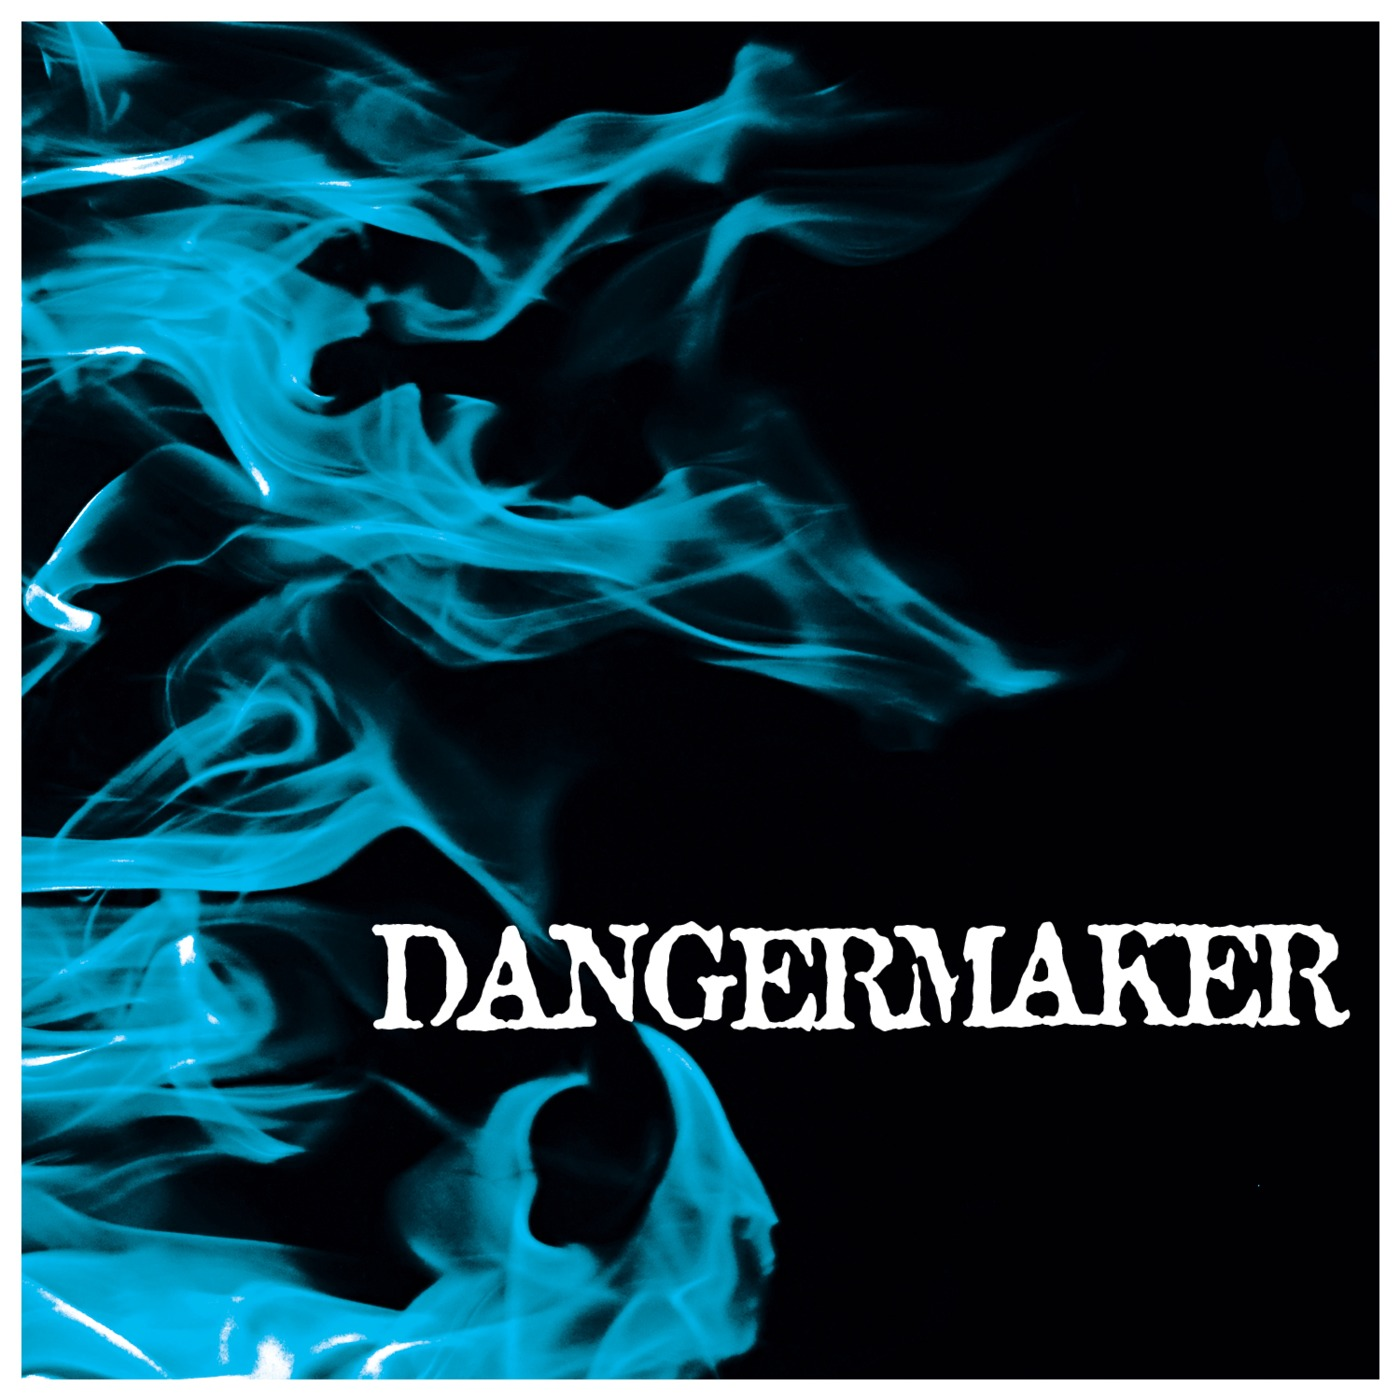 Dangermaker (San Francisco, CA) ....Something More